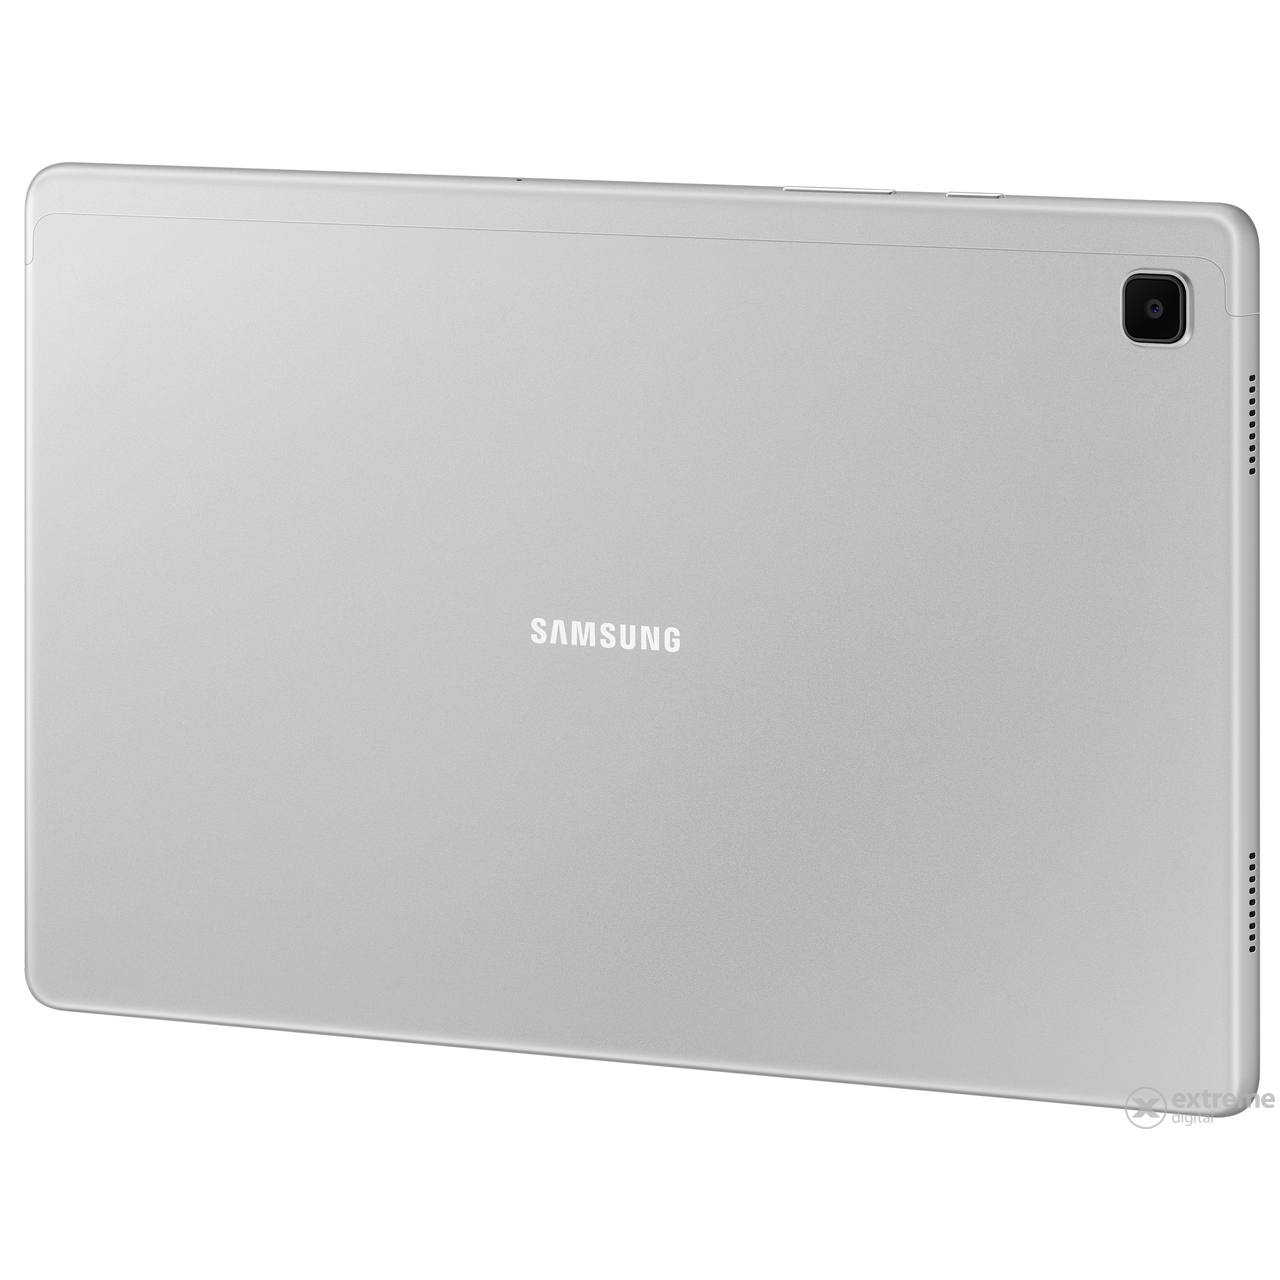 Samsung Galaxy Tab A7 10.4 (SM-T500) WiFi 3GB/32GB Tablet, Silver (Android)